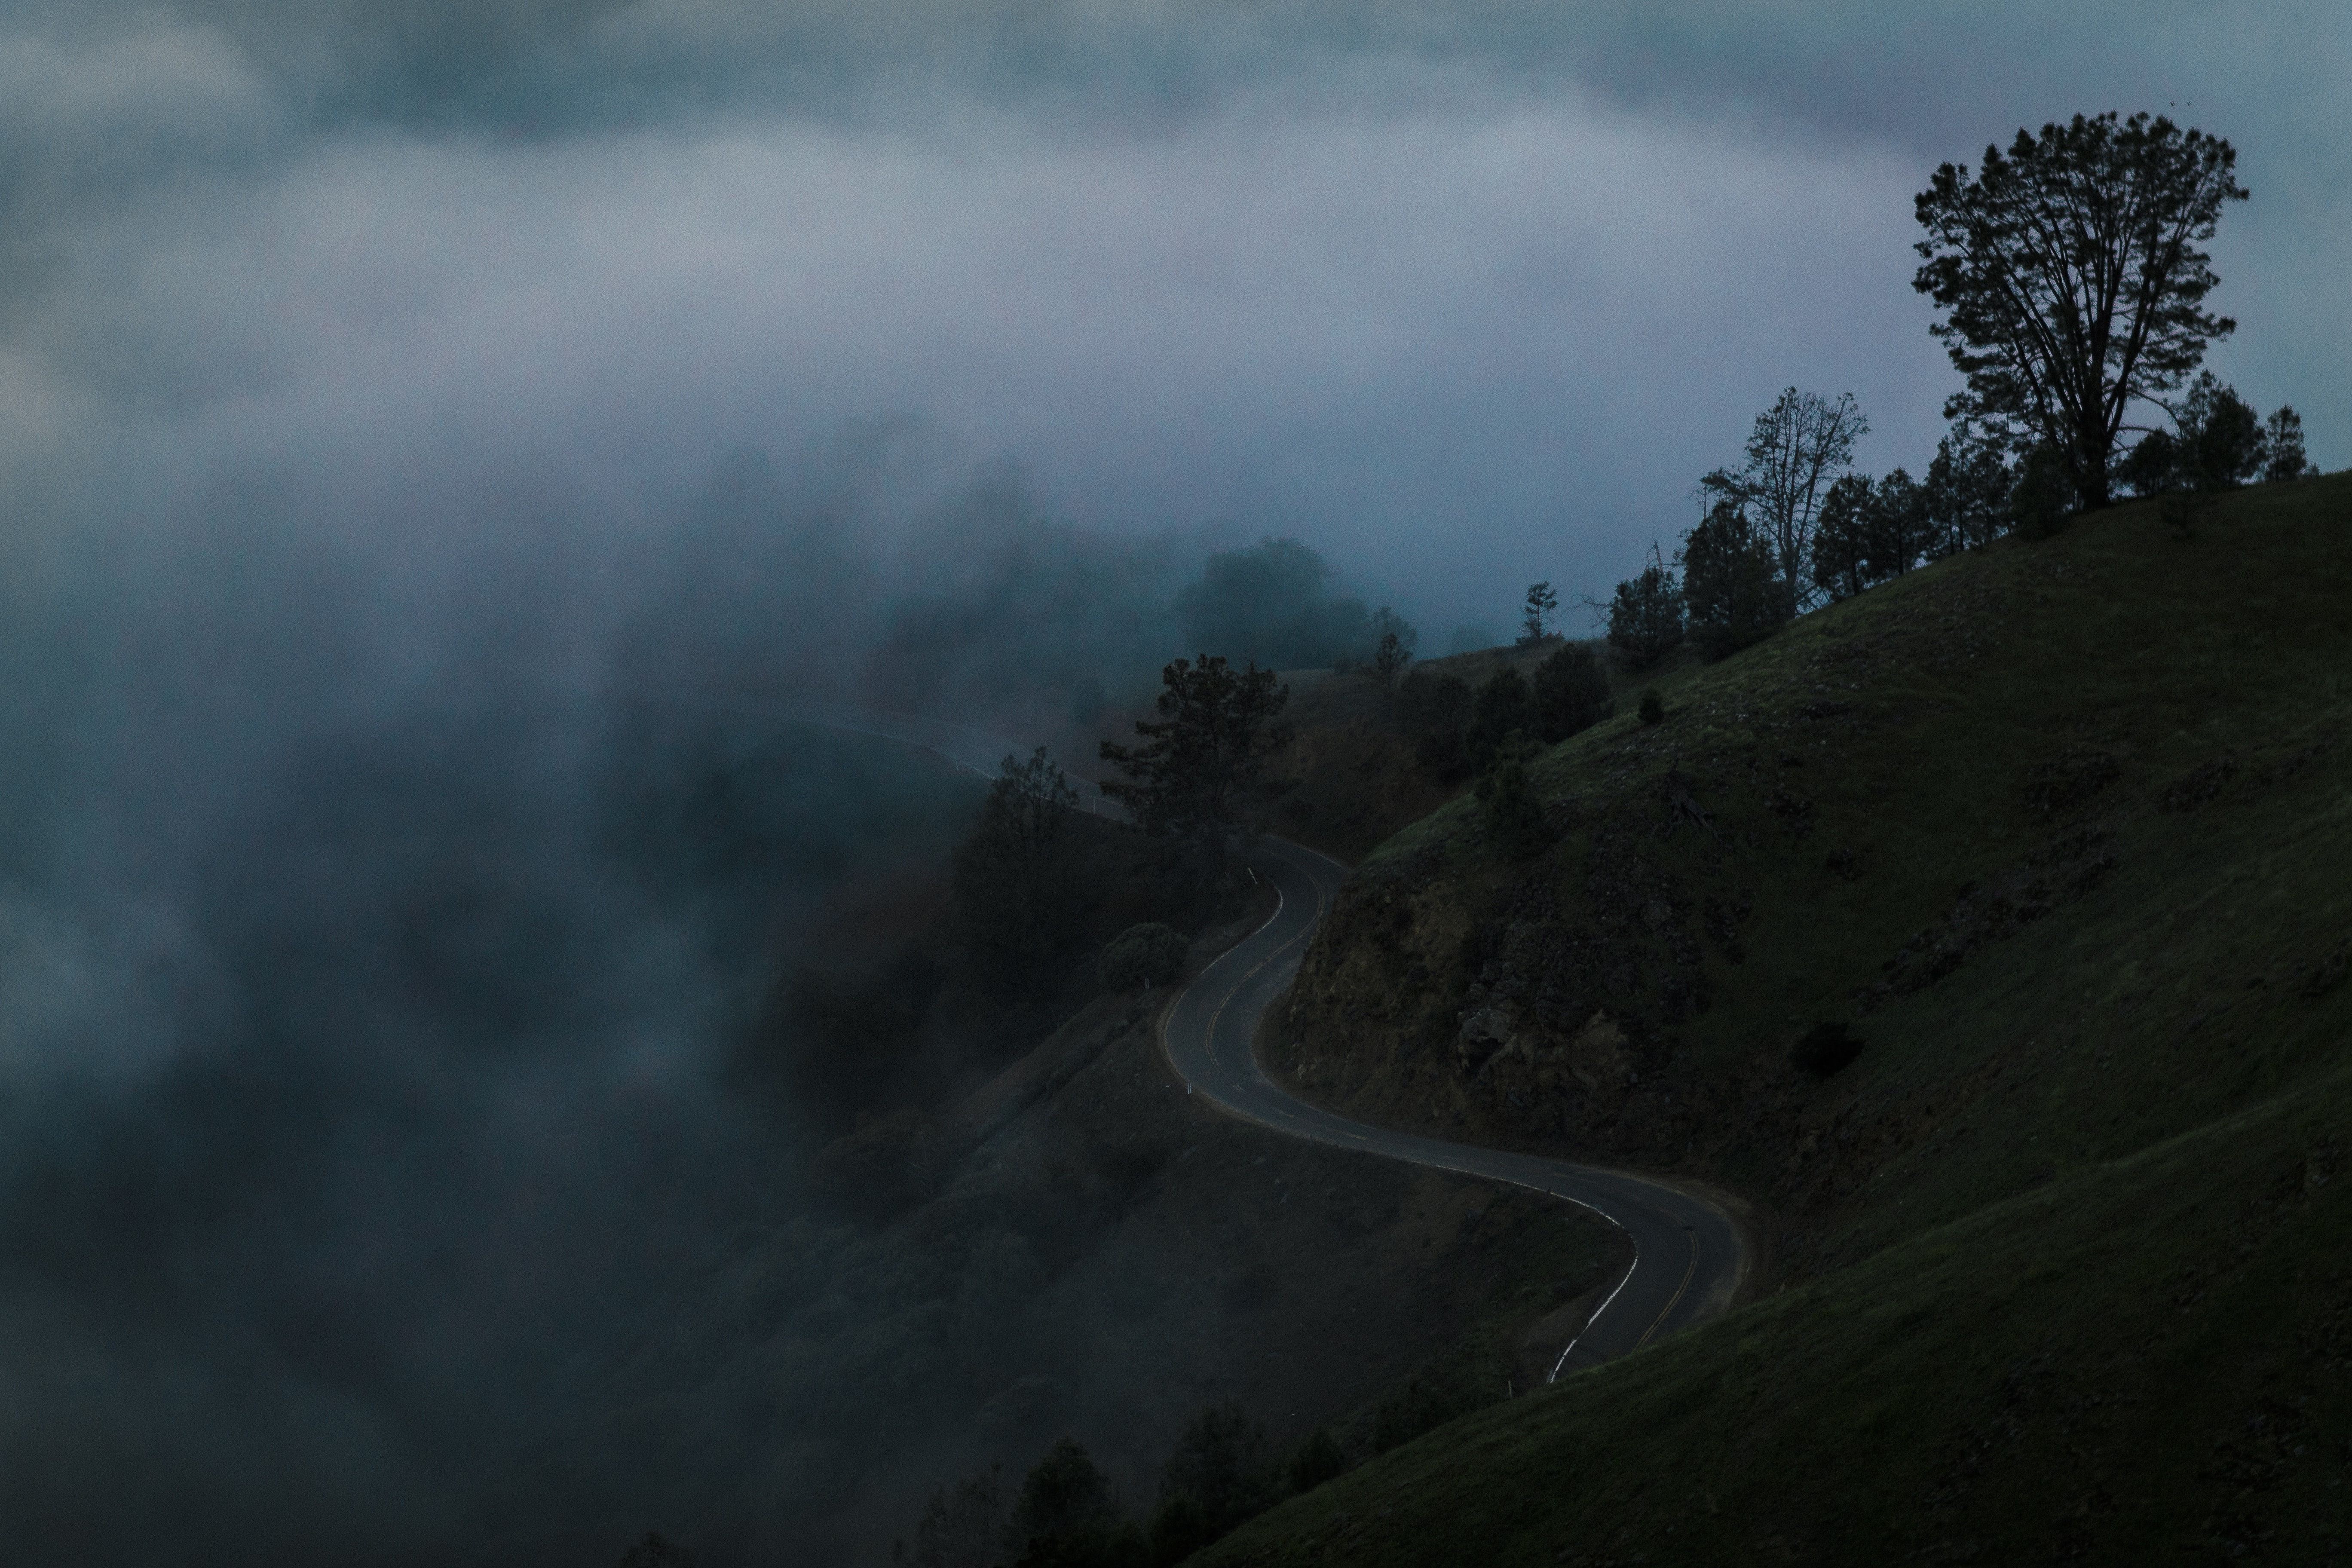 A winding road along a hill under thick mist